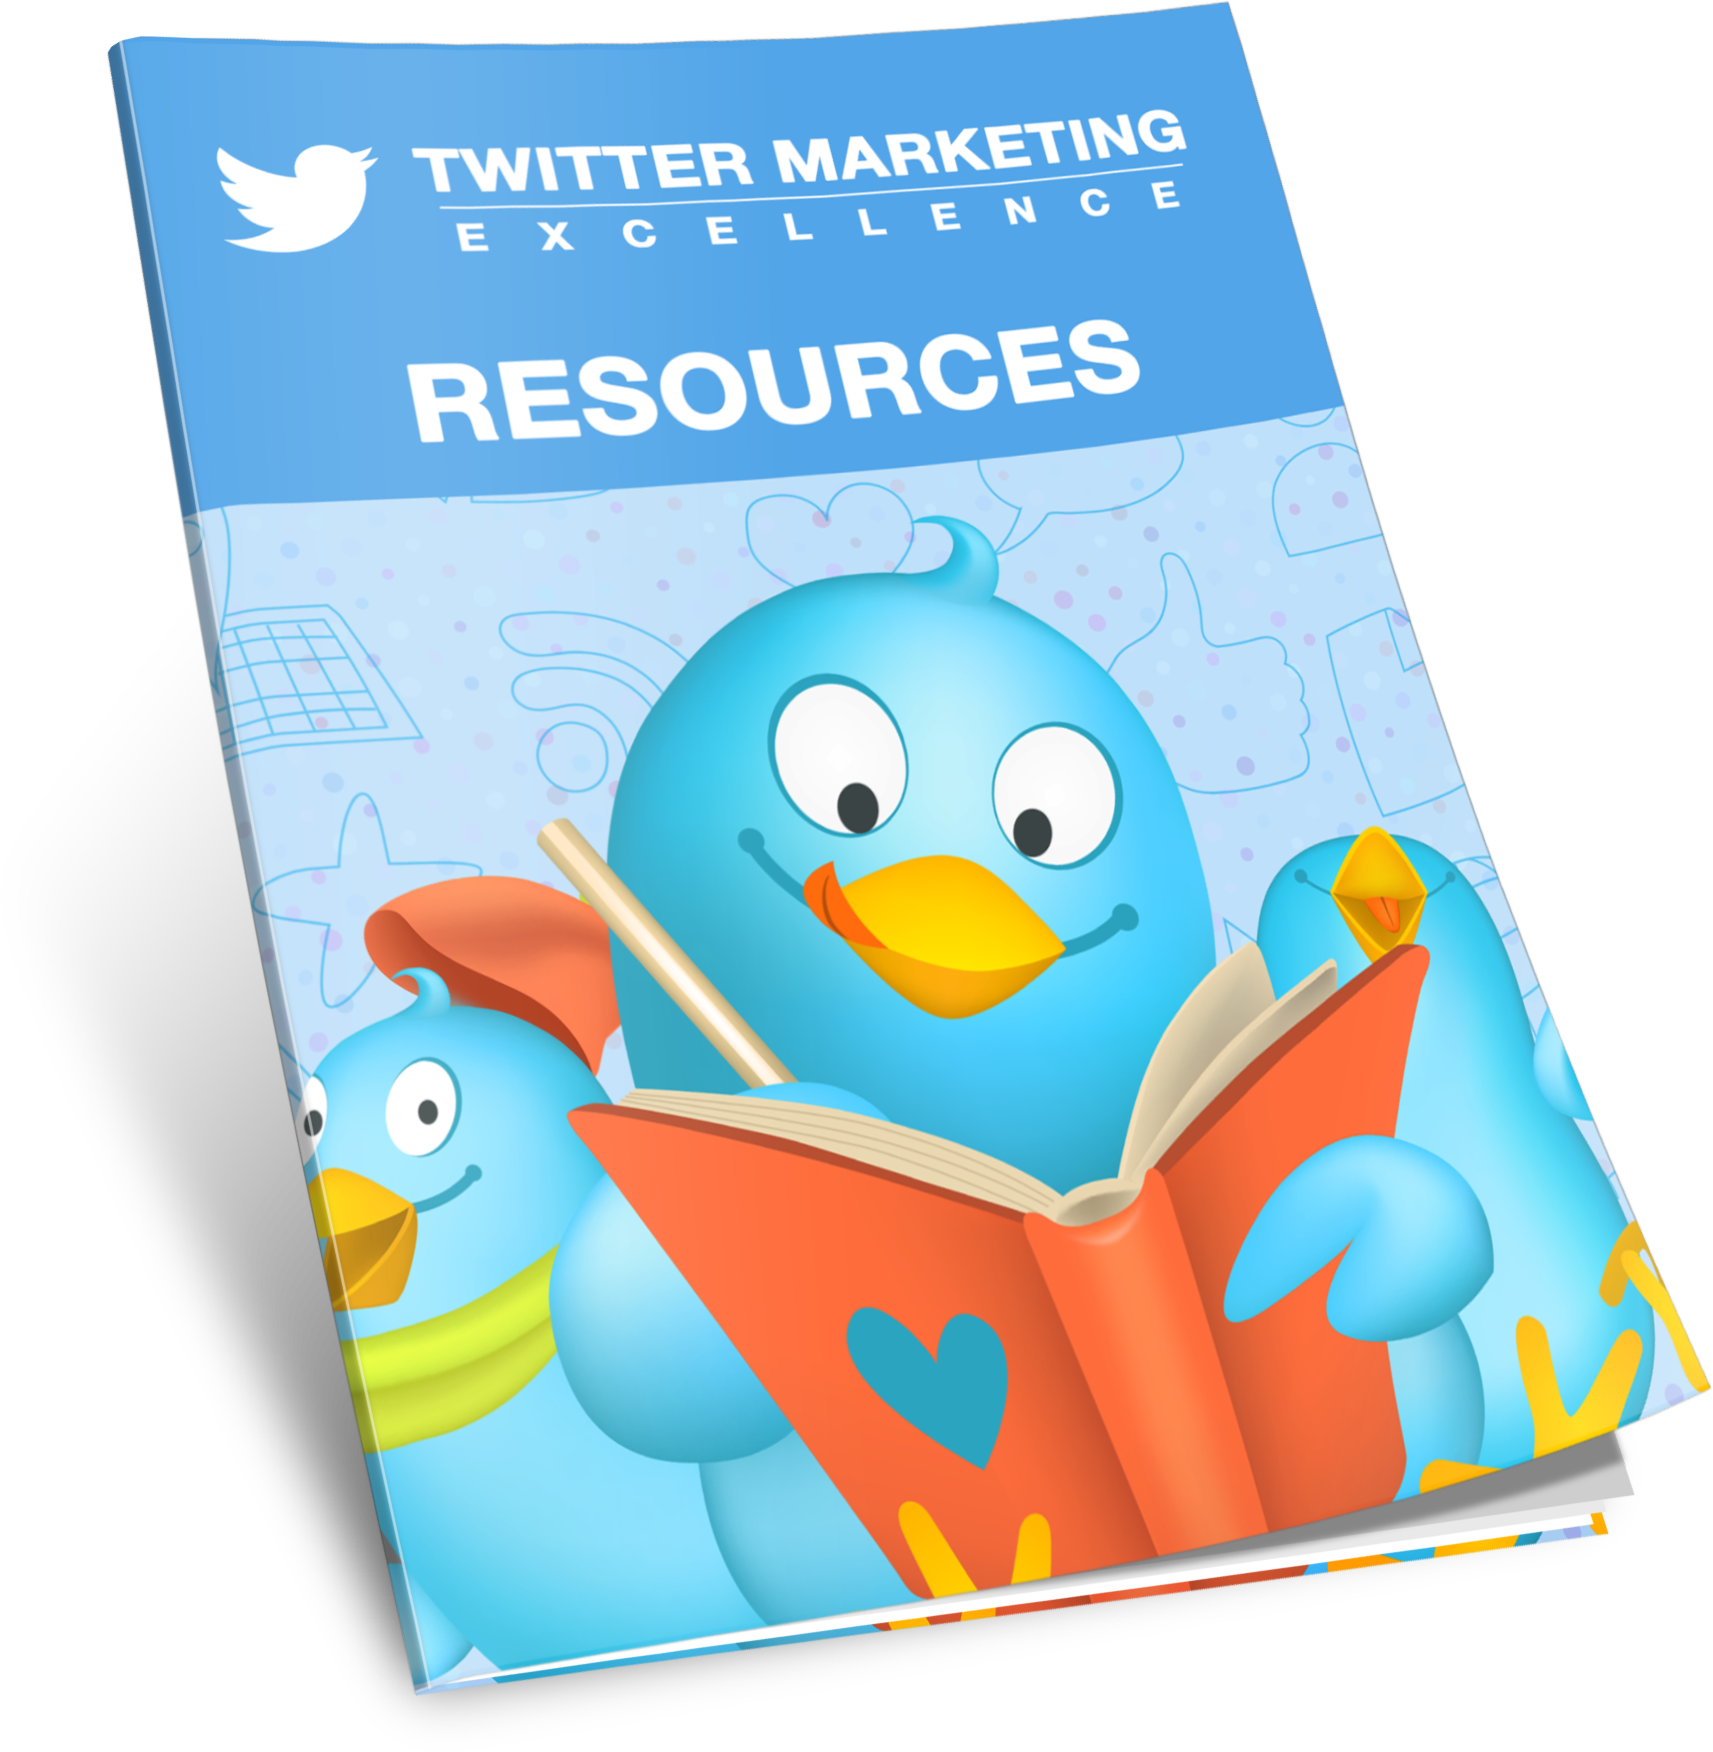 RESOURCES – TWITTER MARKETING EXCELLENCE